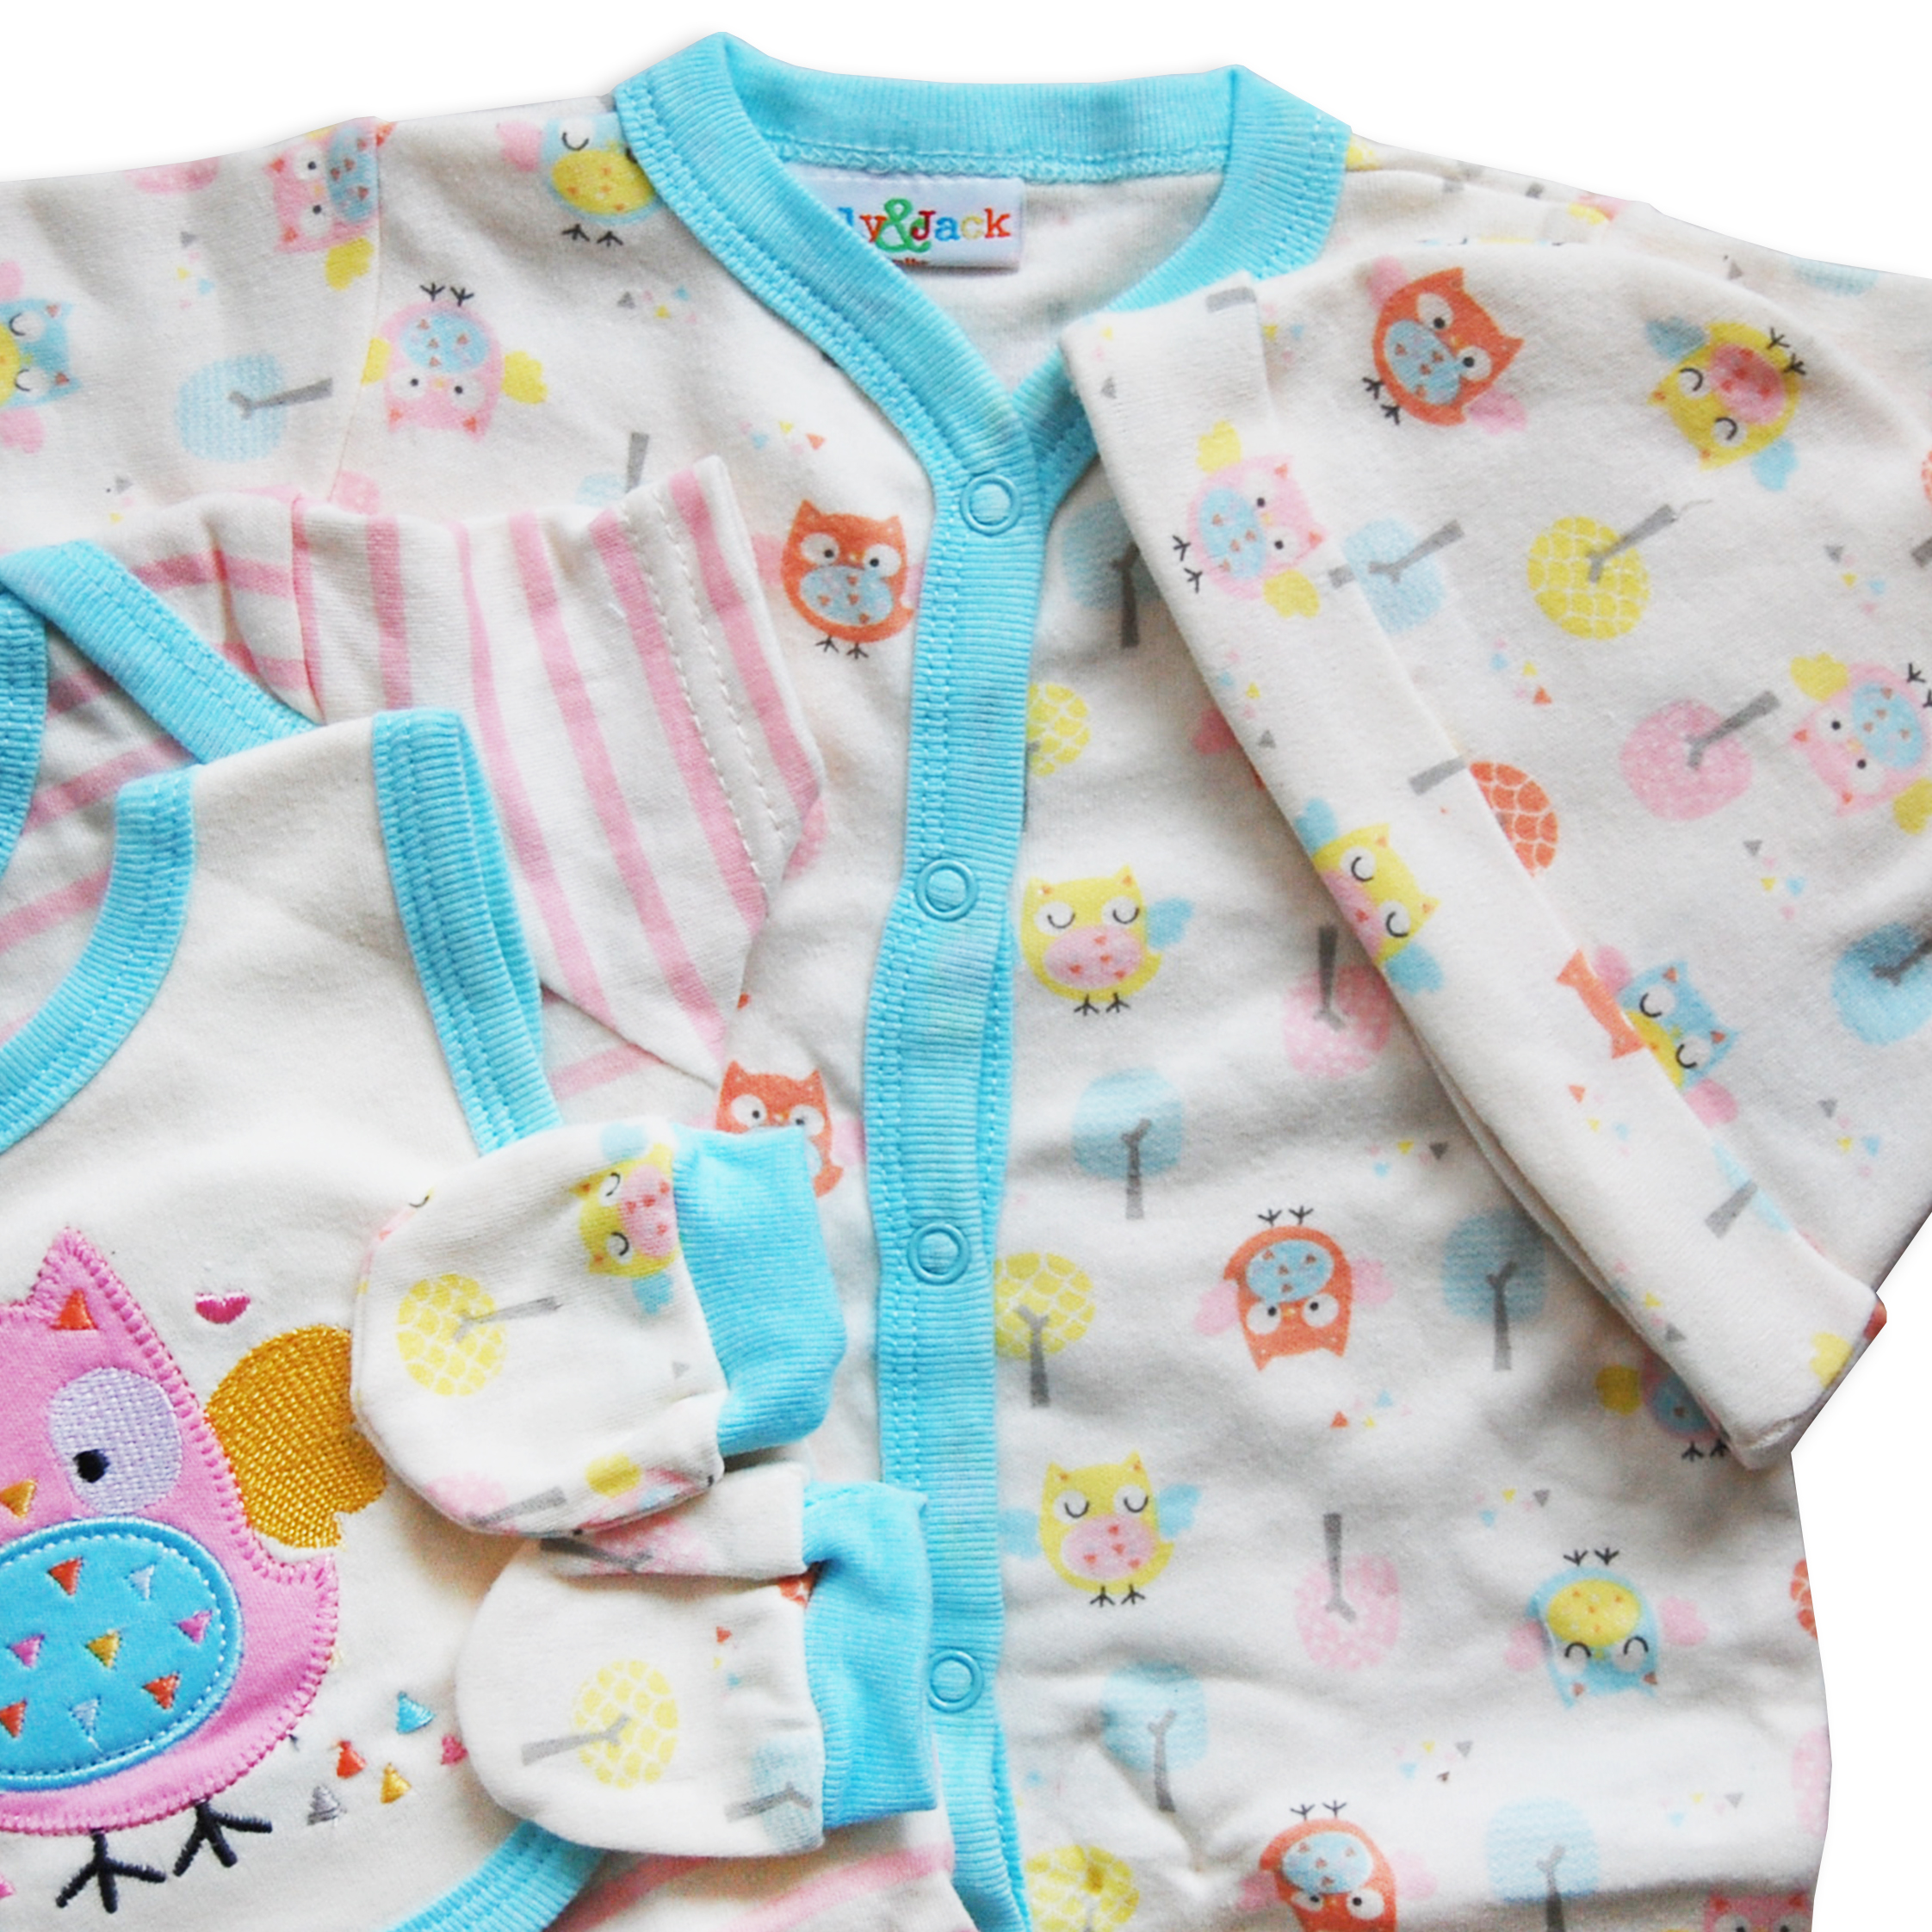 5 piece baby boys girls layette clothing gift set box by lily jack nb 0 3 3 6 ebay. Black Bedroom Furniture Sets. Home Design Ideas